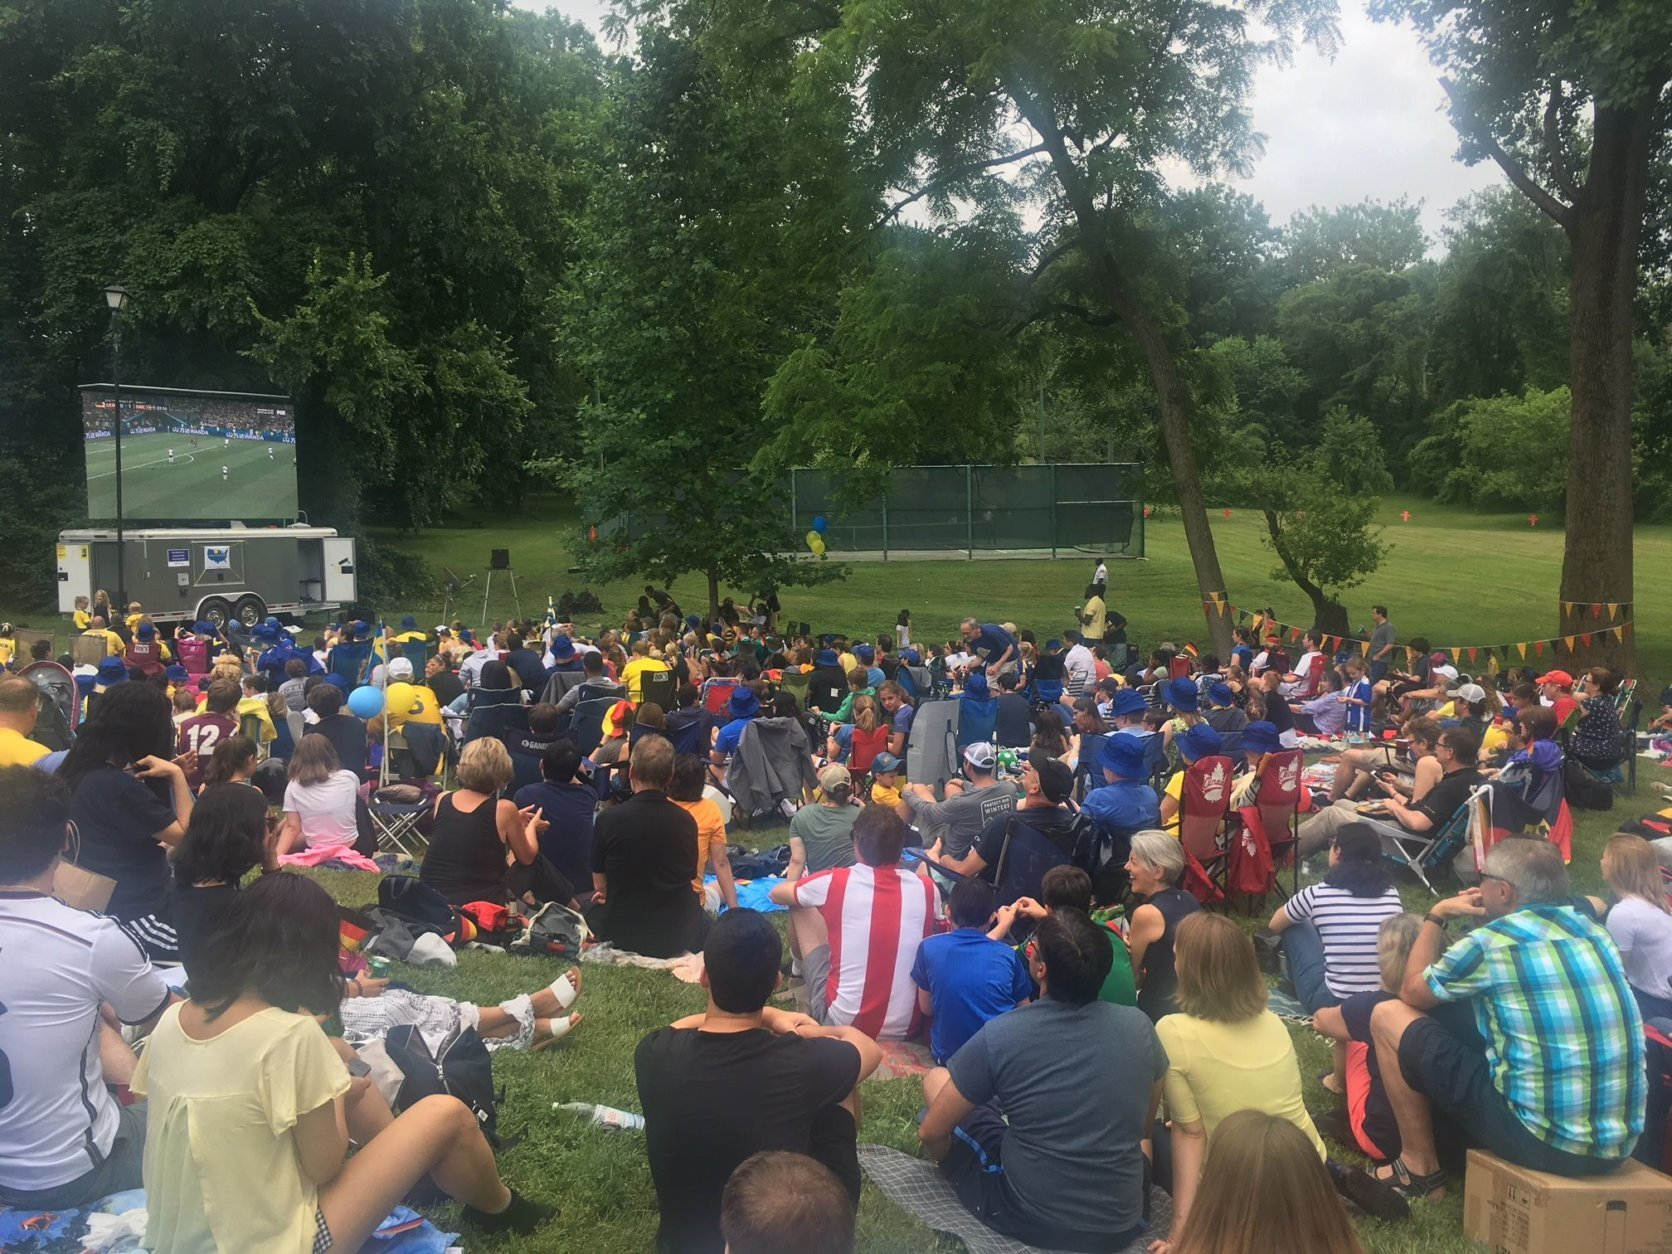 The crowd on the lawn of the Swedish Residence Garden taking in Sweden-Germany. (WTOP/Noah Frank)